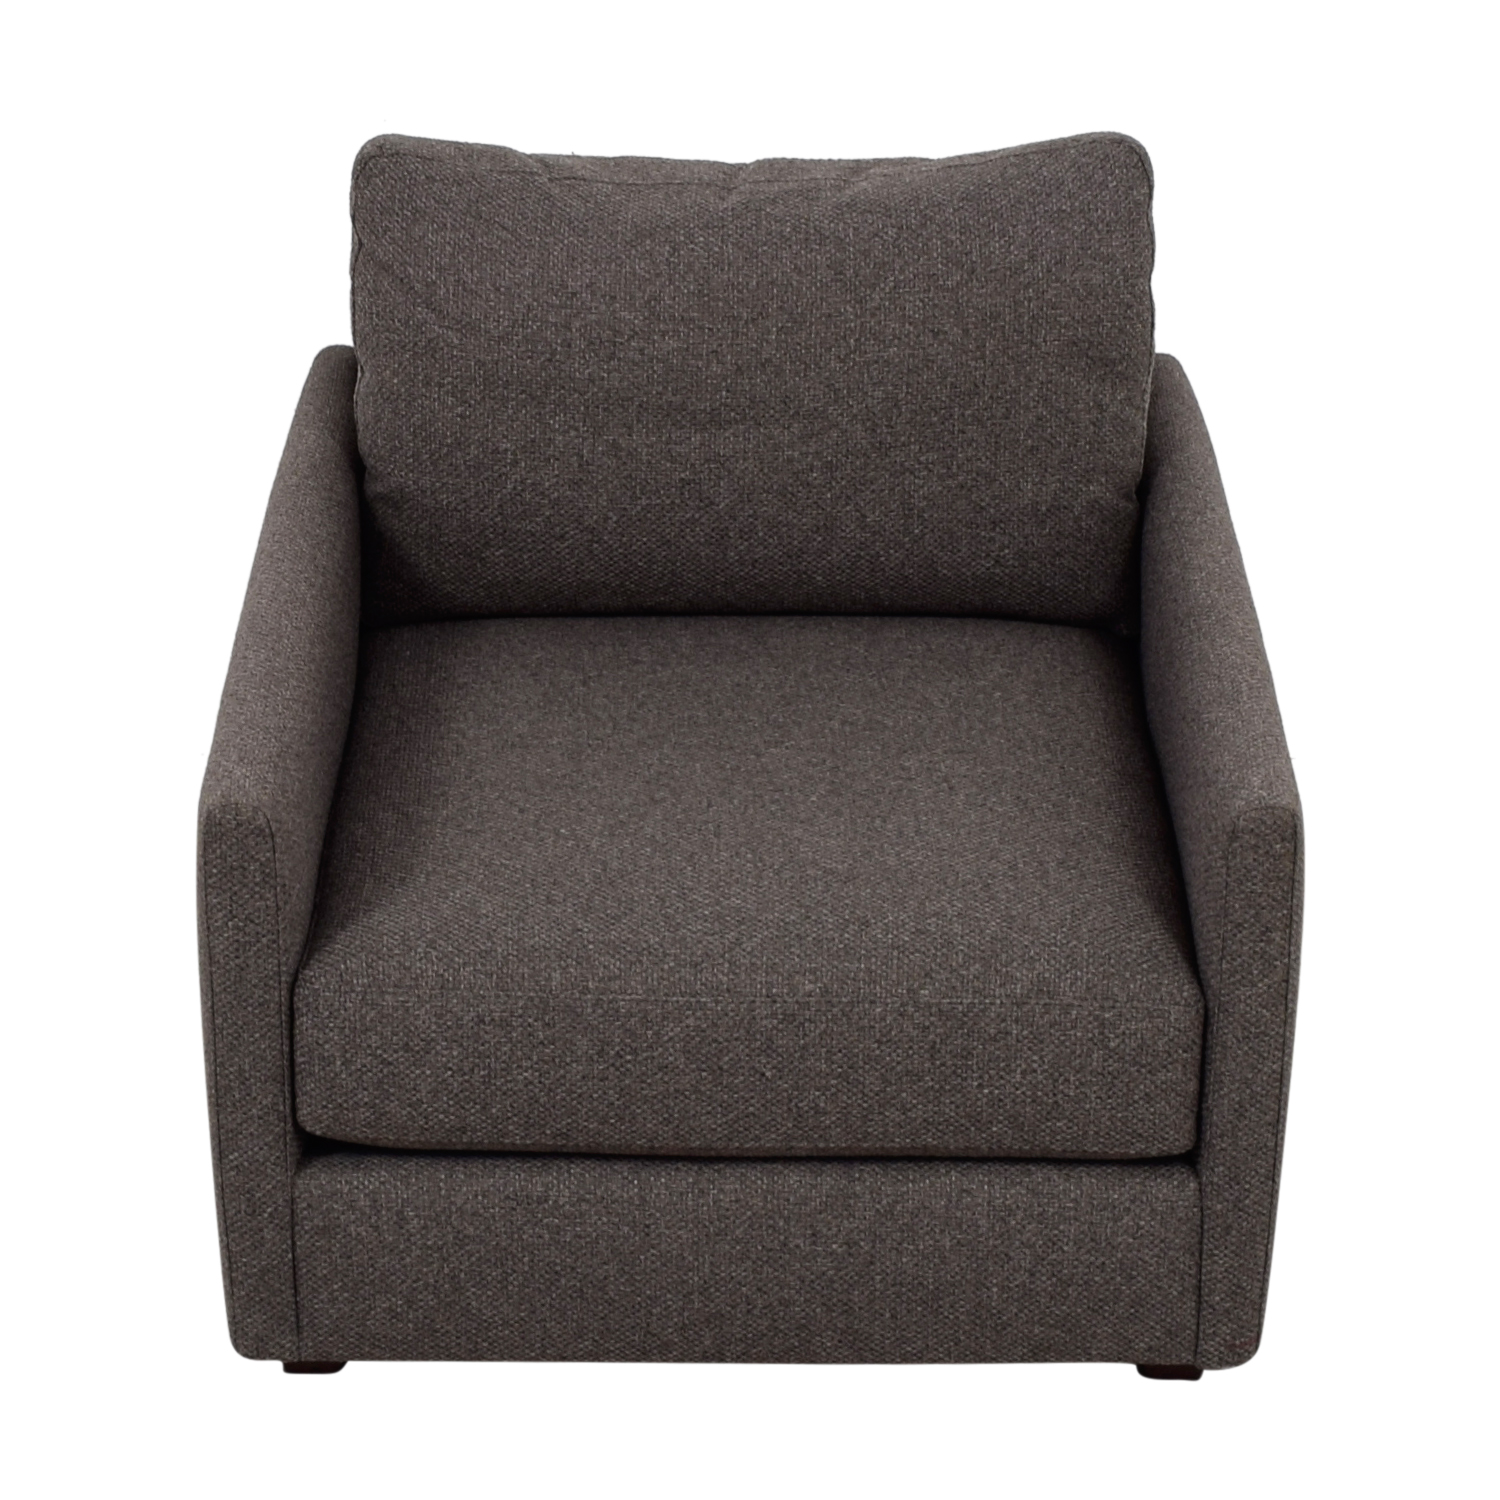 Miraculous 70 Off Crate Barrel Crate Barrel Love Grey Accent Chair Chairs Bralicious Painted Fabric Chair Ideas Braliciousco